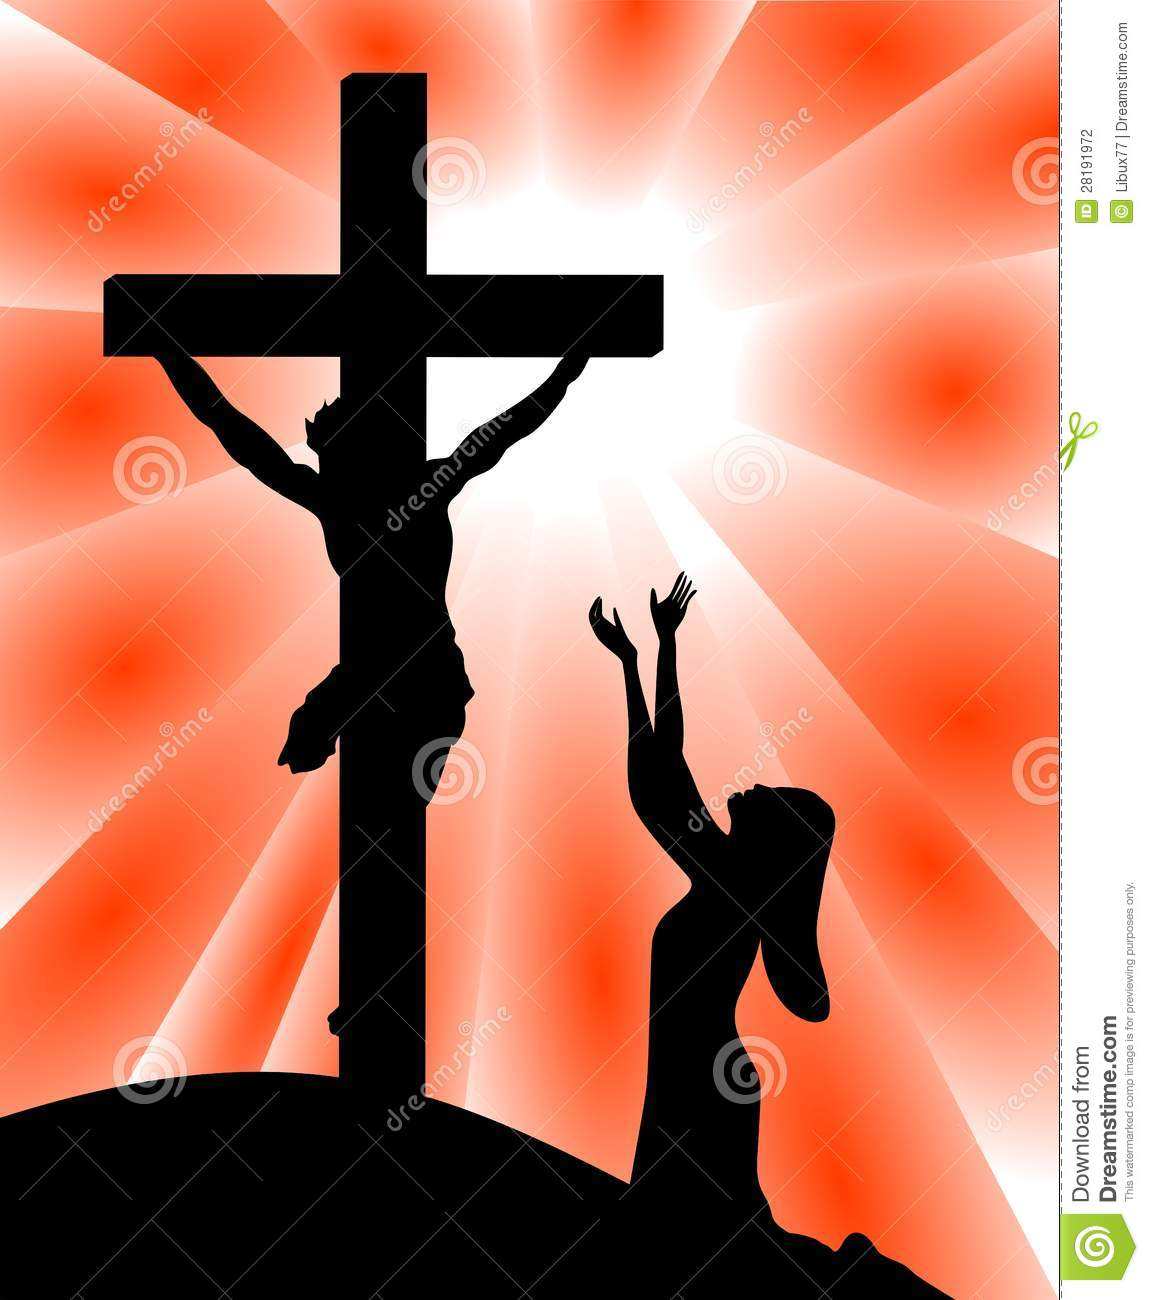 Jesus on the cross with mary clipart clipart library Clipart of mary praying at jesus cross - ClipartFox clipart library